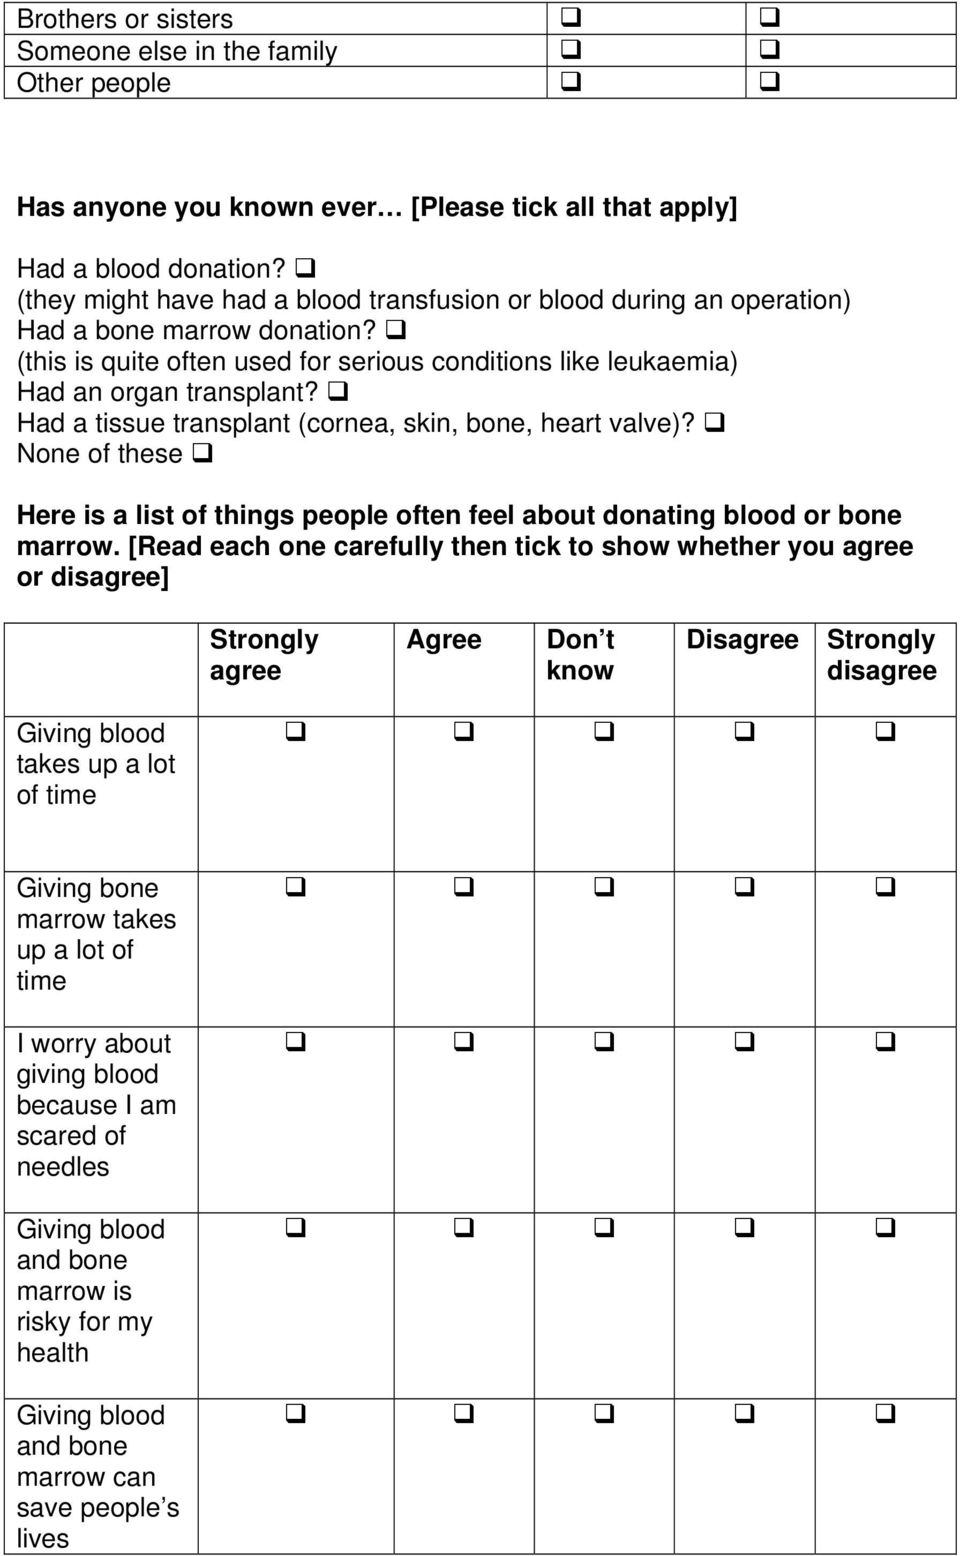 Had a tissue transplant (cornea, skin, bone, heart valve)? None of these Here is a list of things people often feel about donating blood or bone marrow.